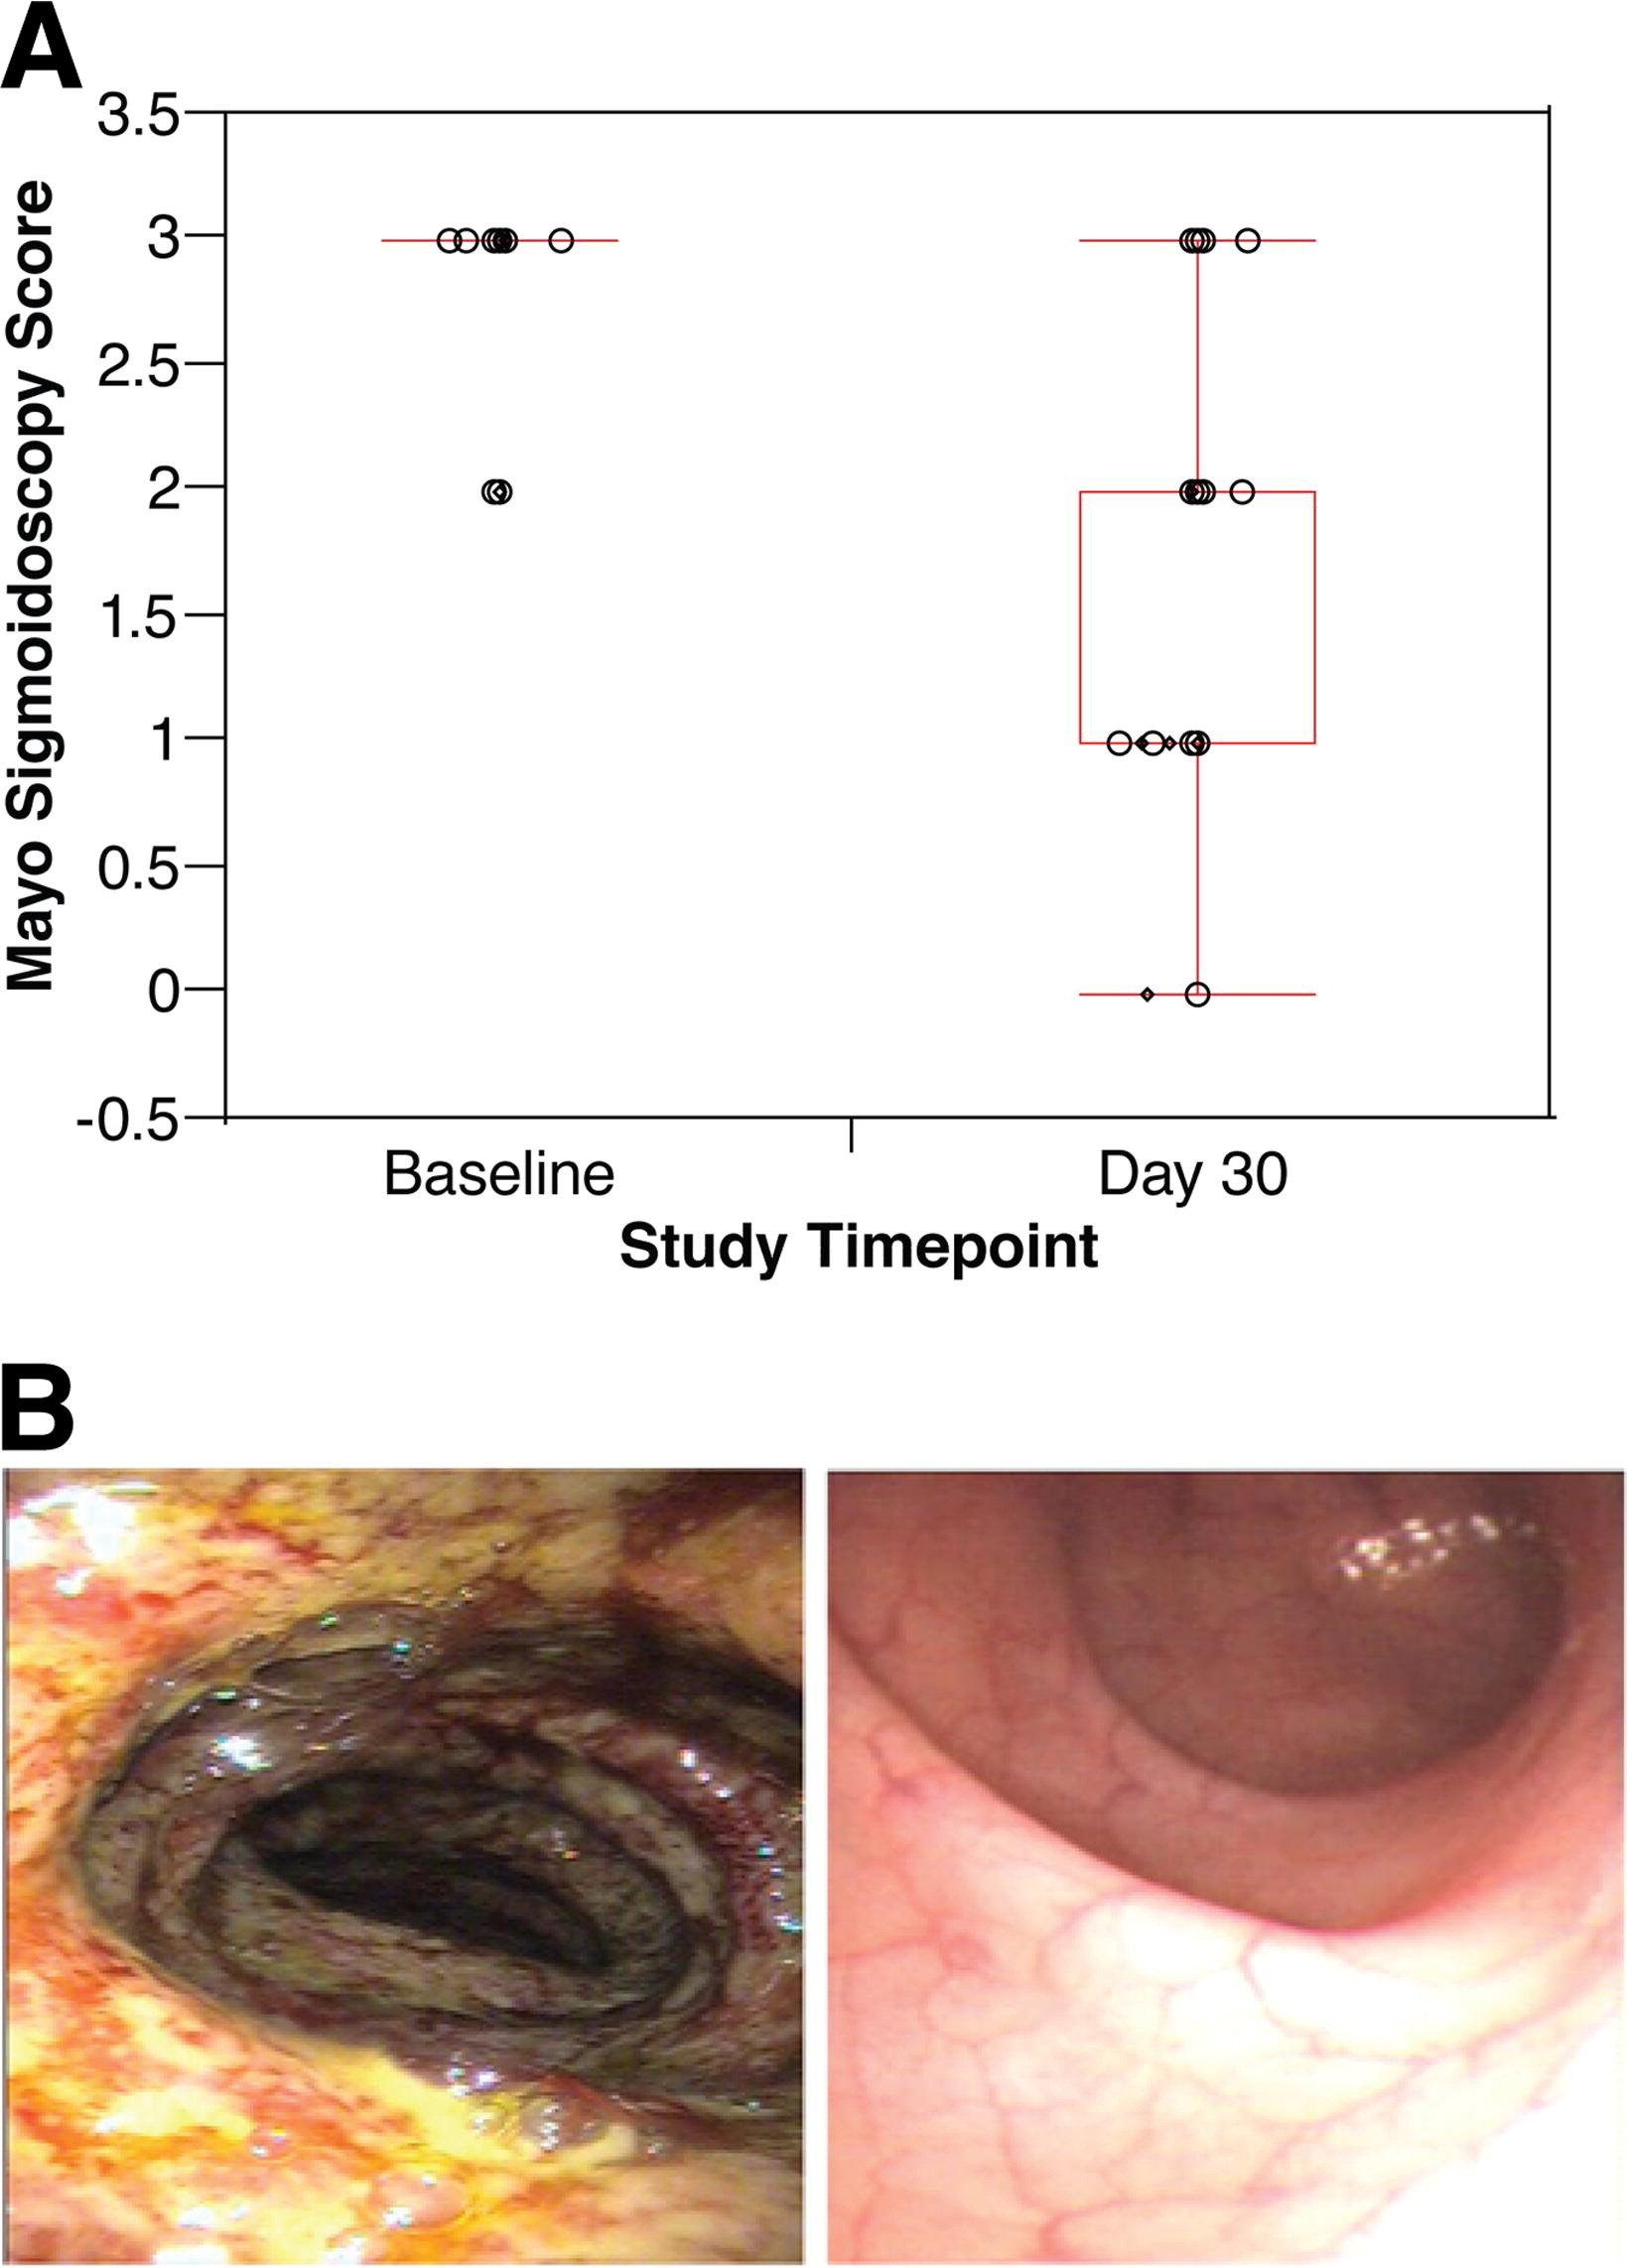 steroid-refractory severe ulcerative colitis what are the available treatment options